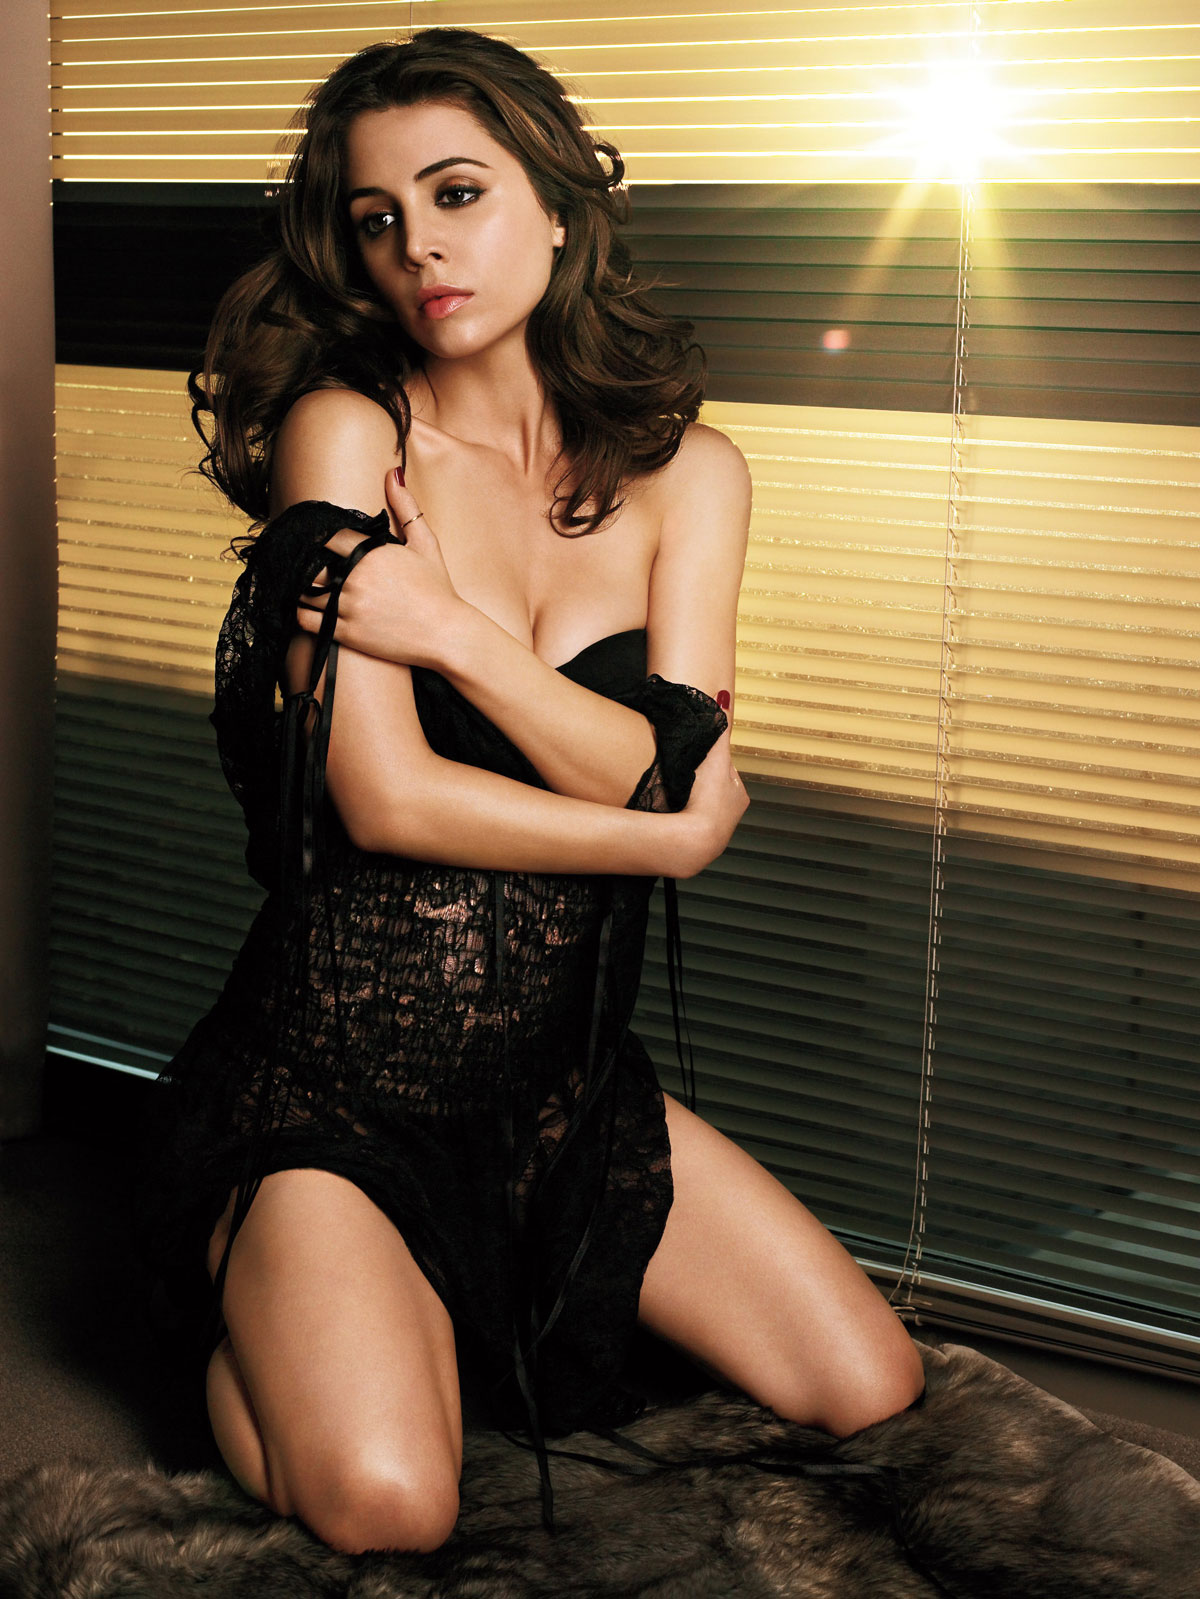 Eliza Dushku Hot in Black